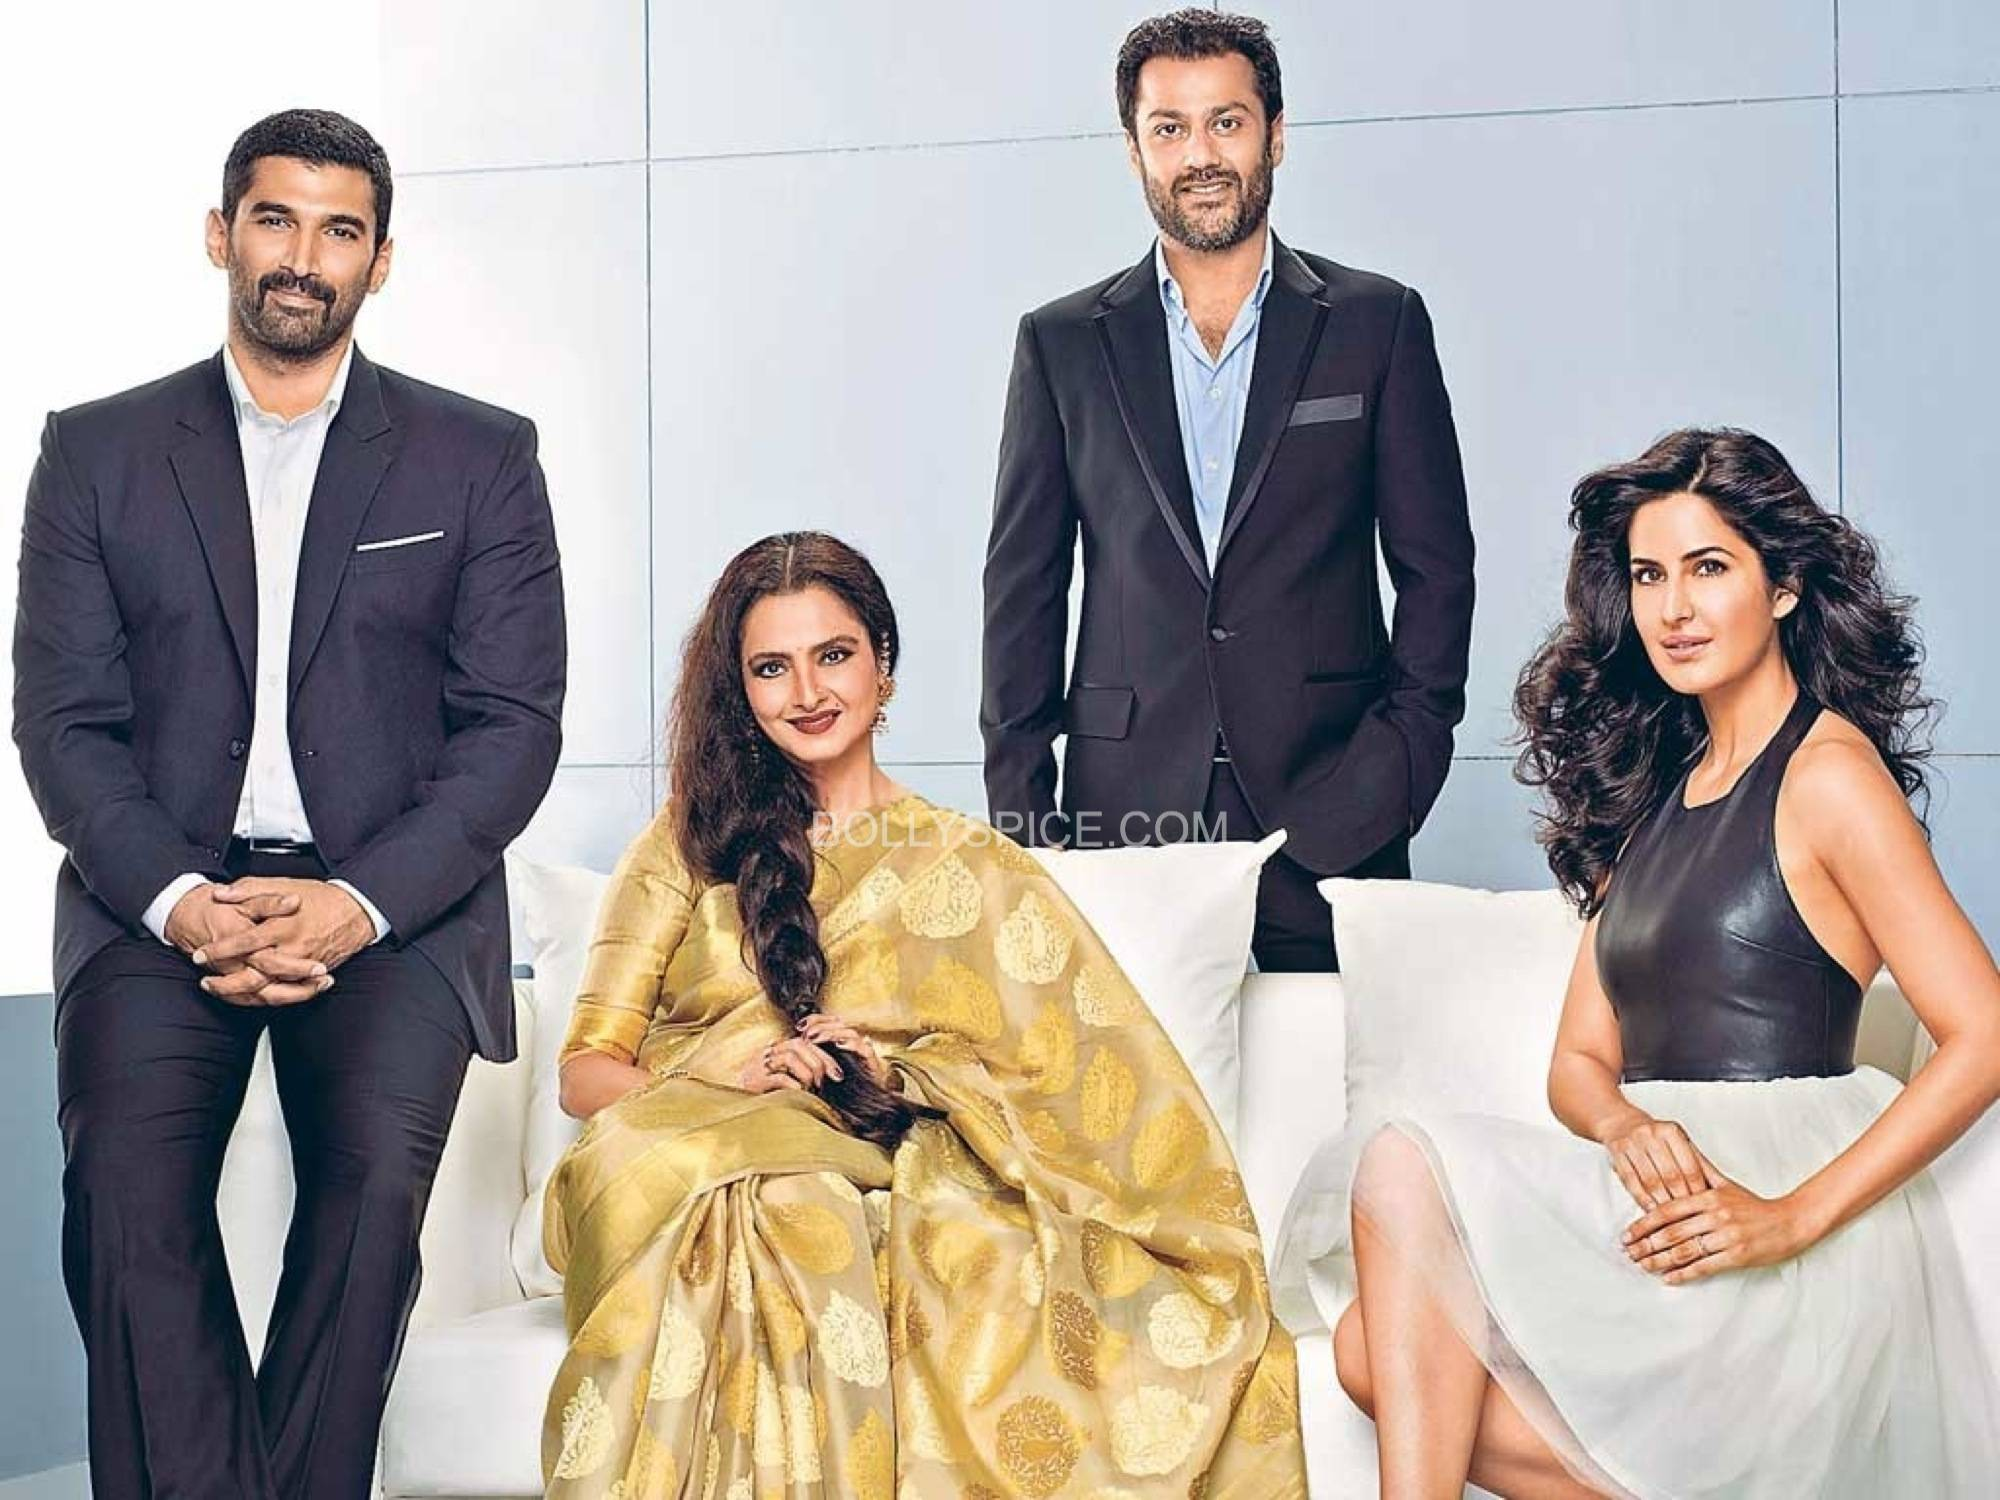 Fitoor cast image Rekha and Katrina Kaif to share screen space for the first time with Fitoor